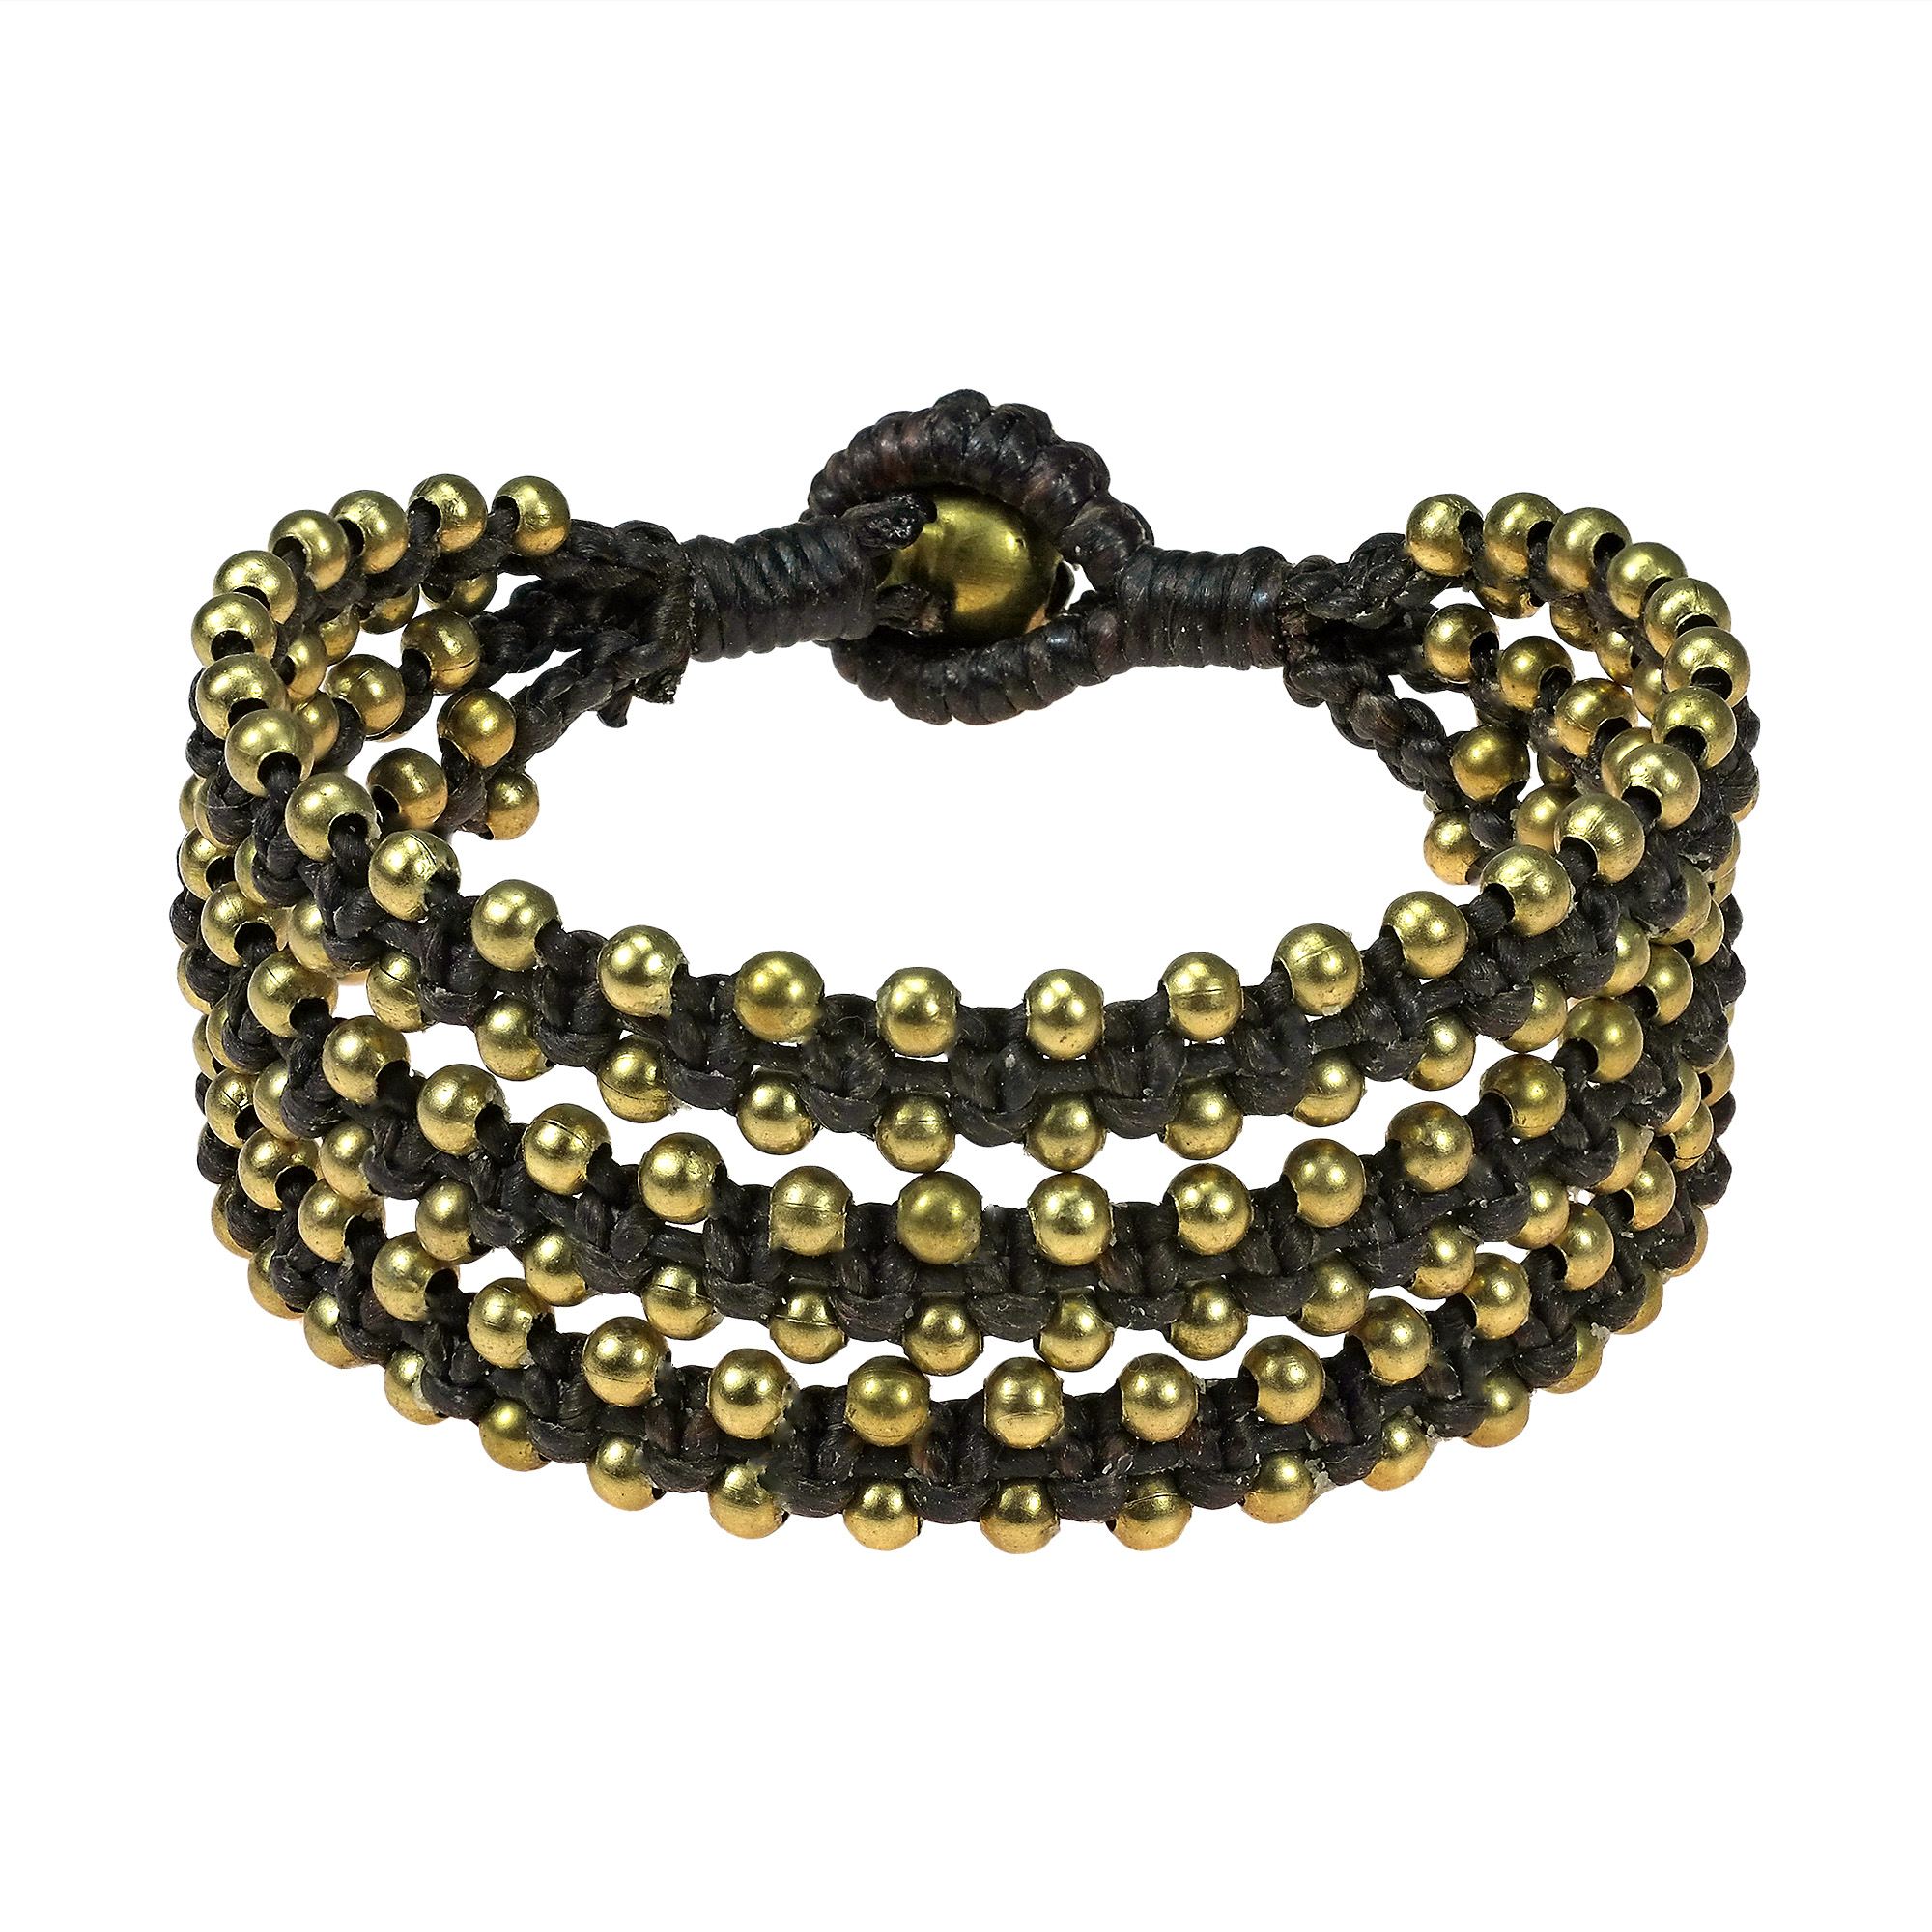 Organic Beauty Fashion Brass Beads Triple Strand Bracelet